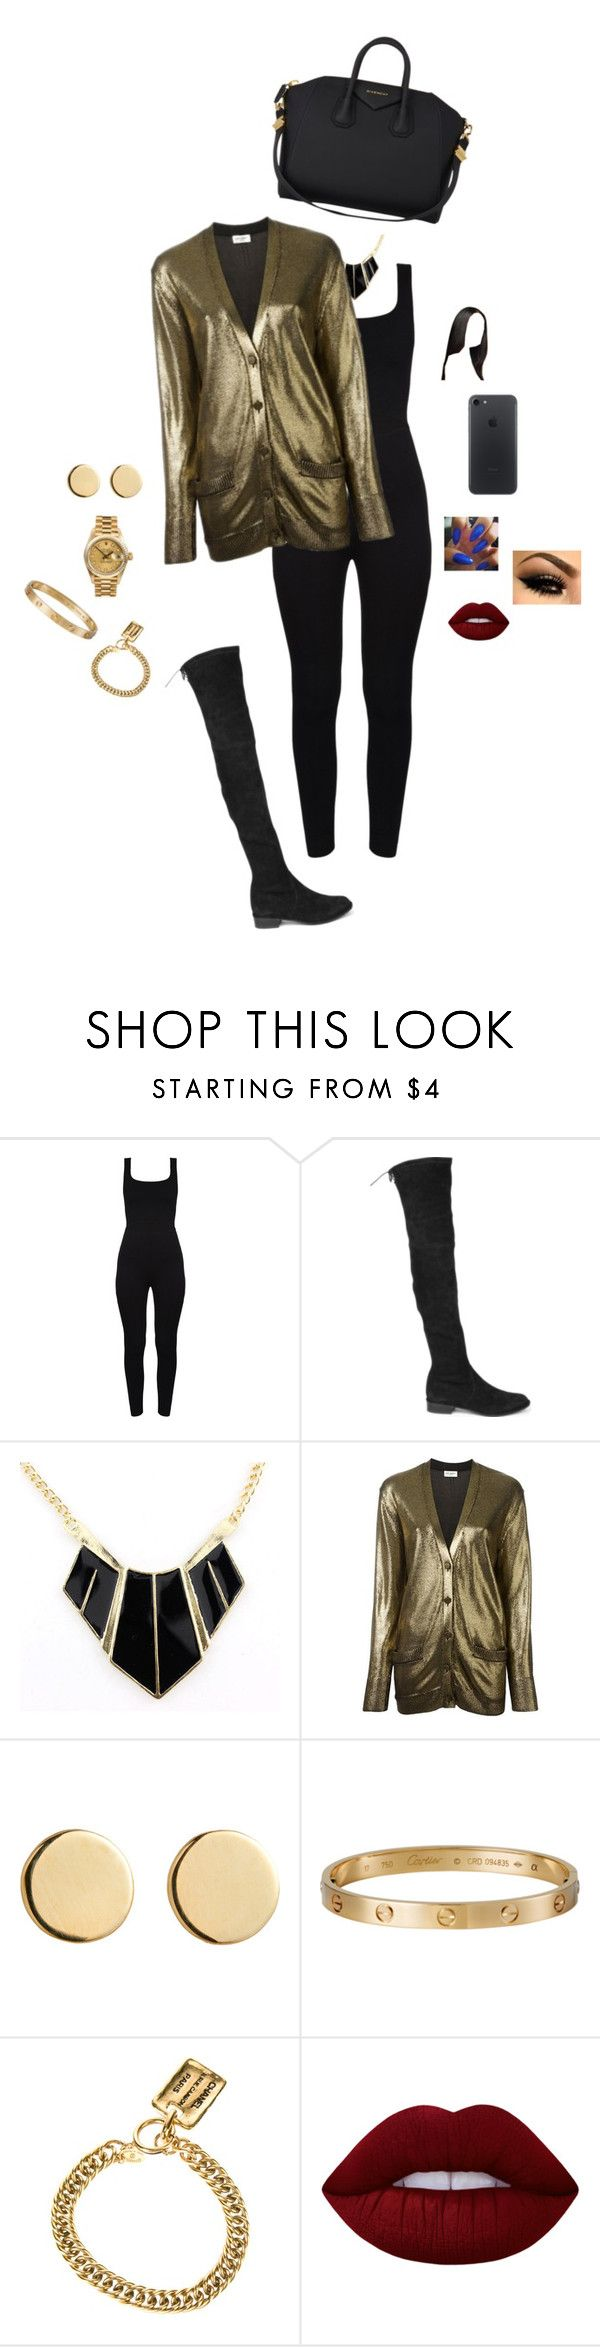 """Black and Gold Day"" by destinee1019 ❤ liked on Polyvore featuring Stuart Weitzman, Yves Saint Laurent, Loren Stewart, Chanel, Lime Crime, Rolex and Givenchy"